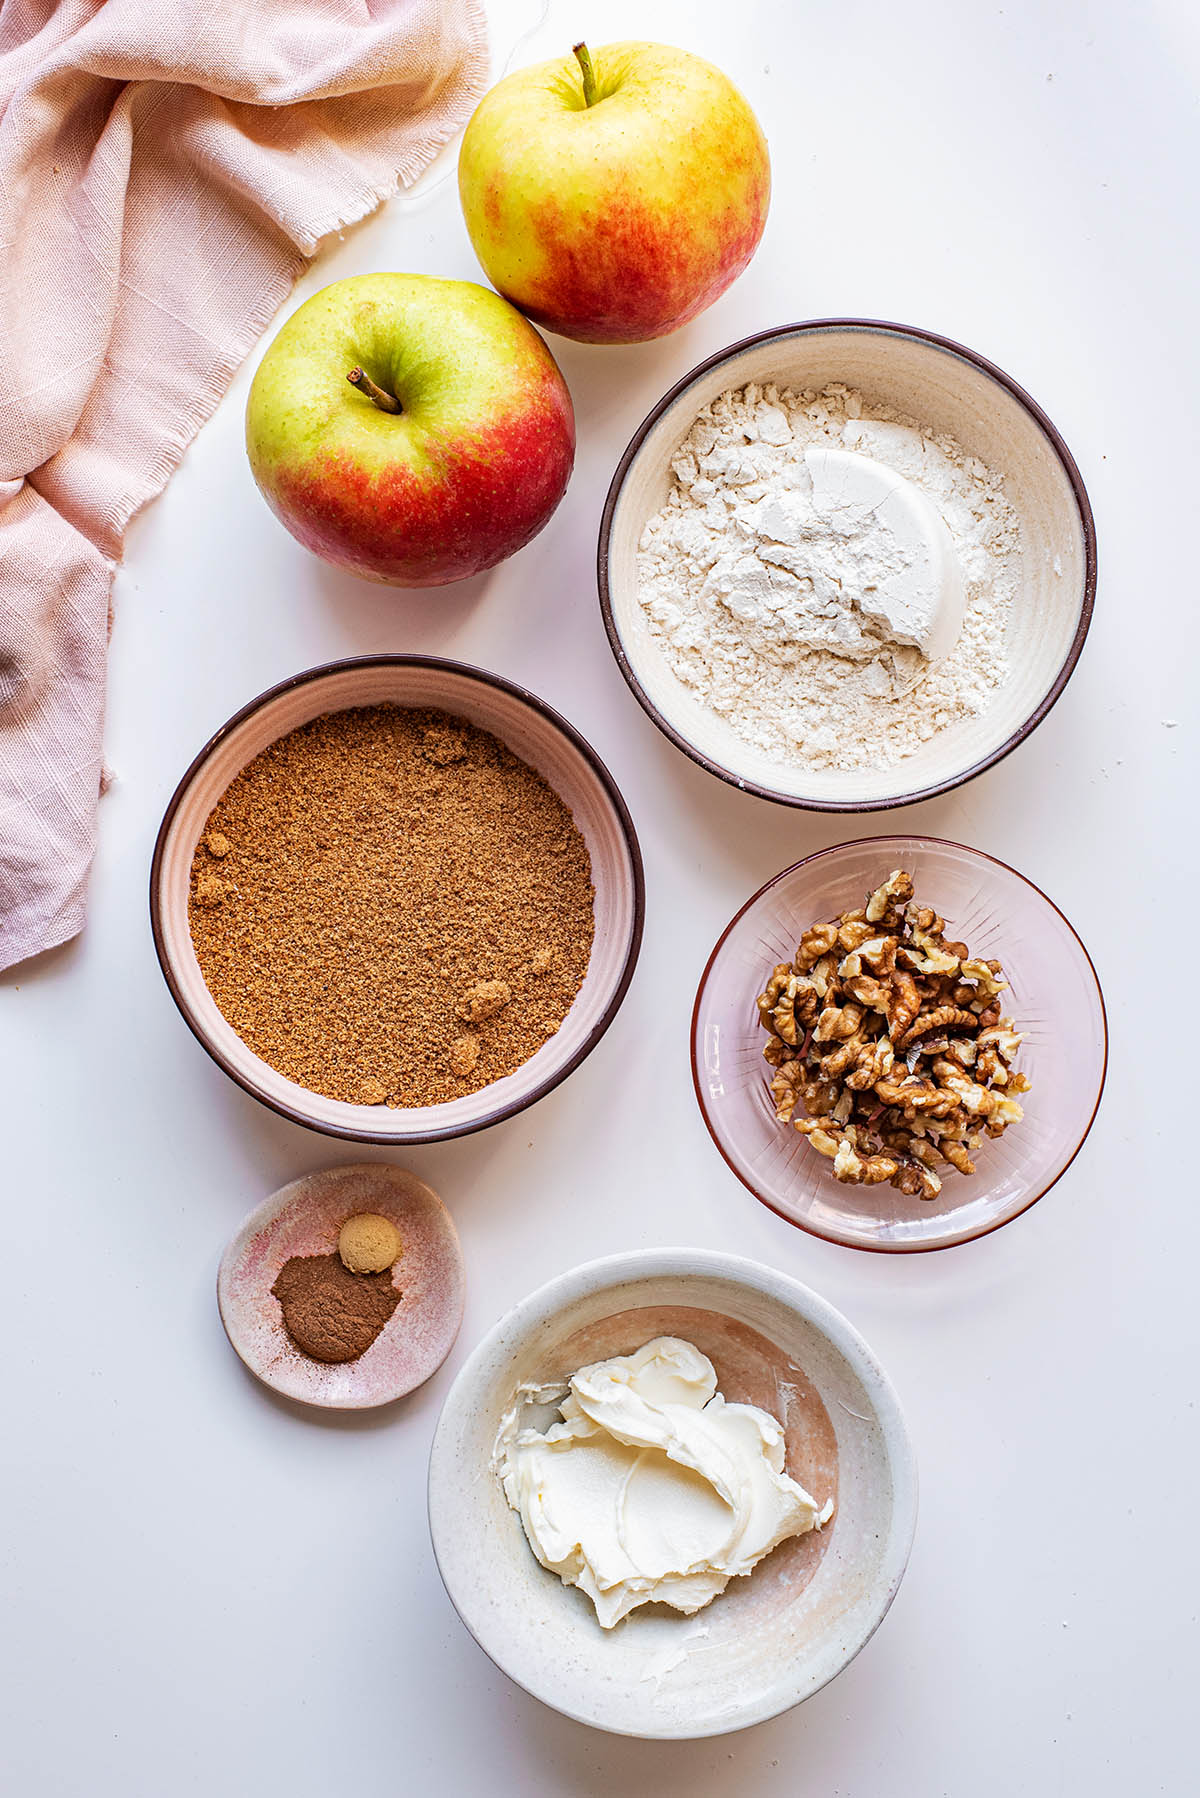 Walnut crumble topping ingredients.